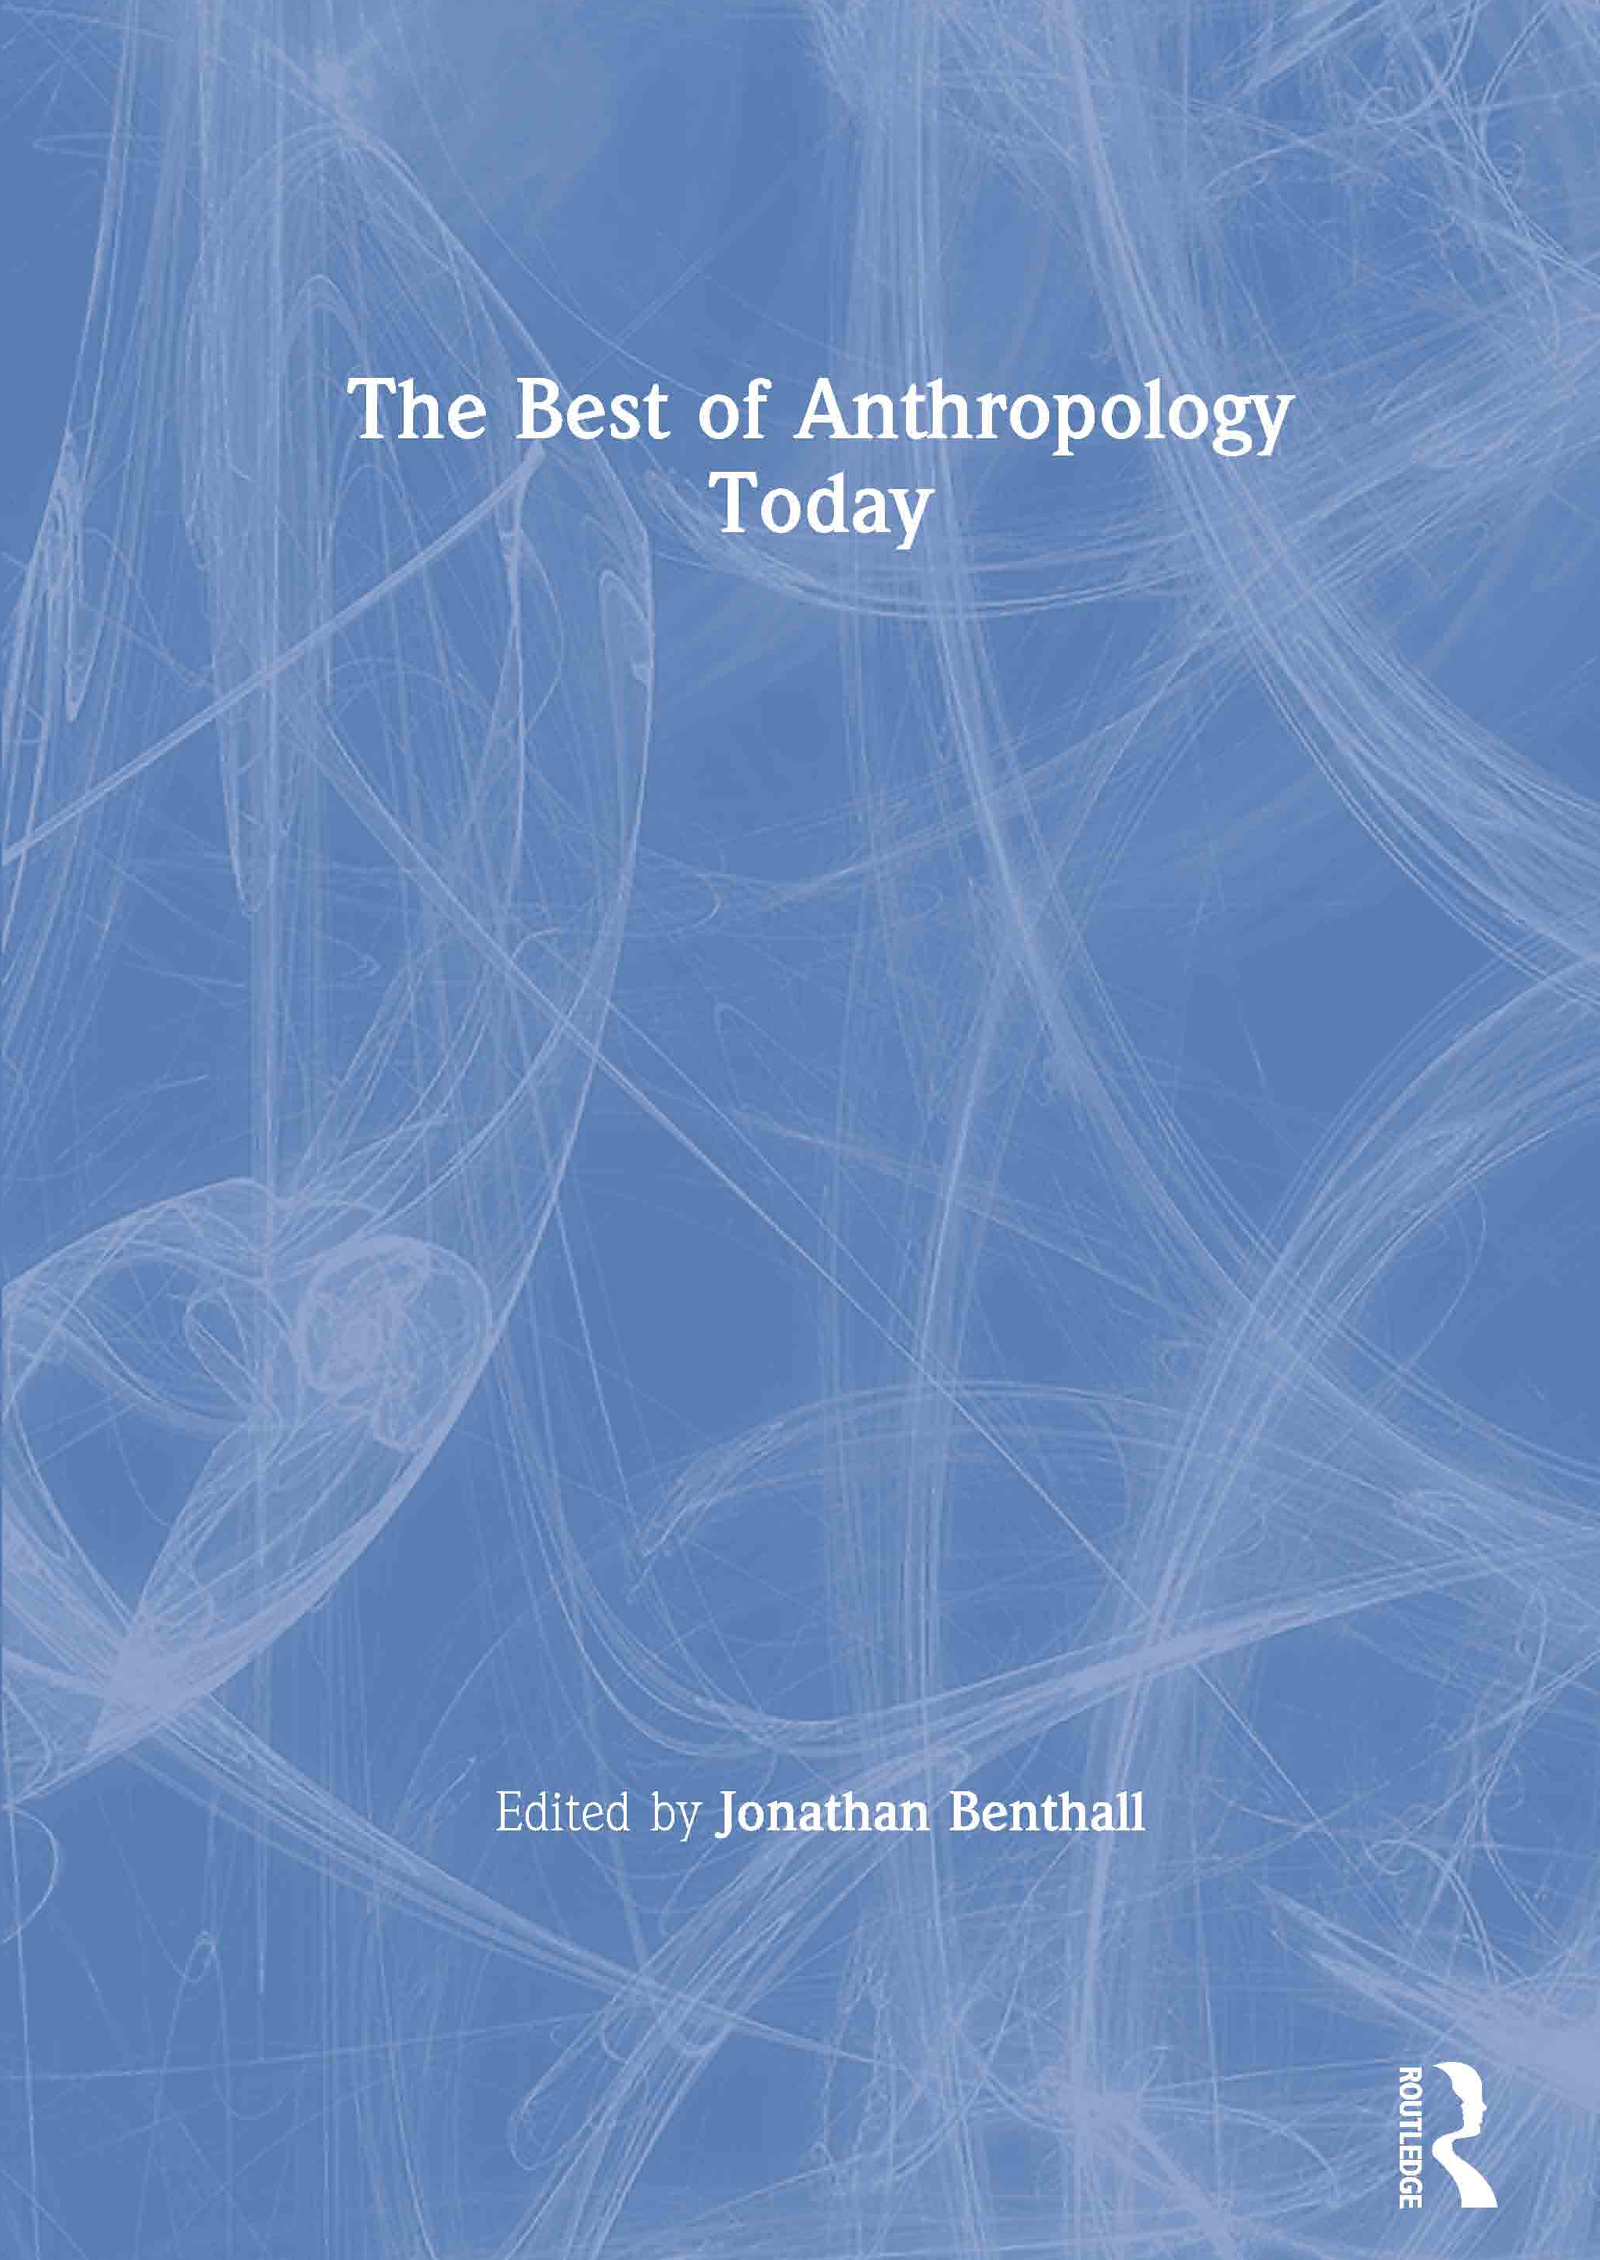 The Best of Anthropology Today